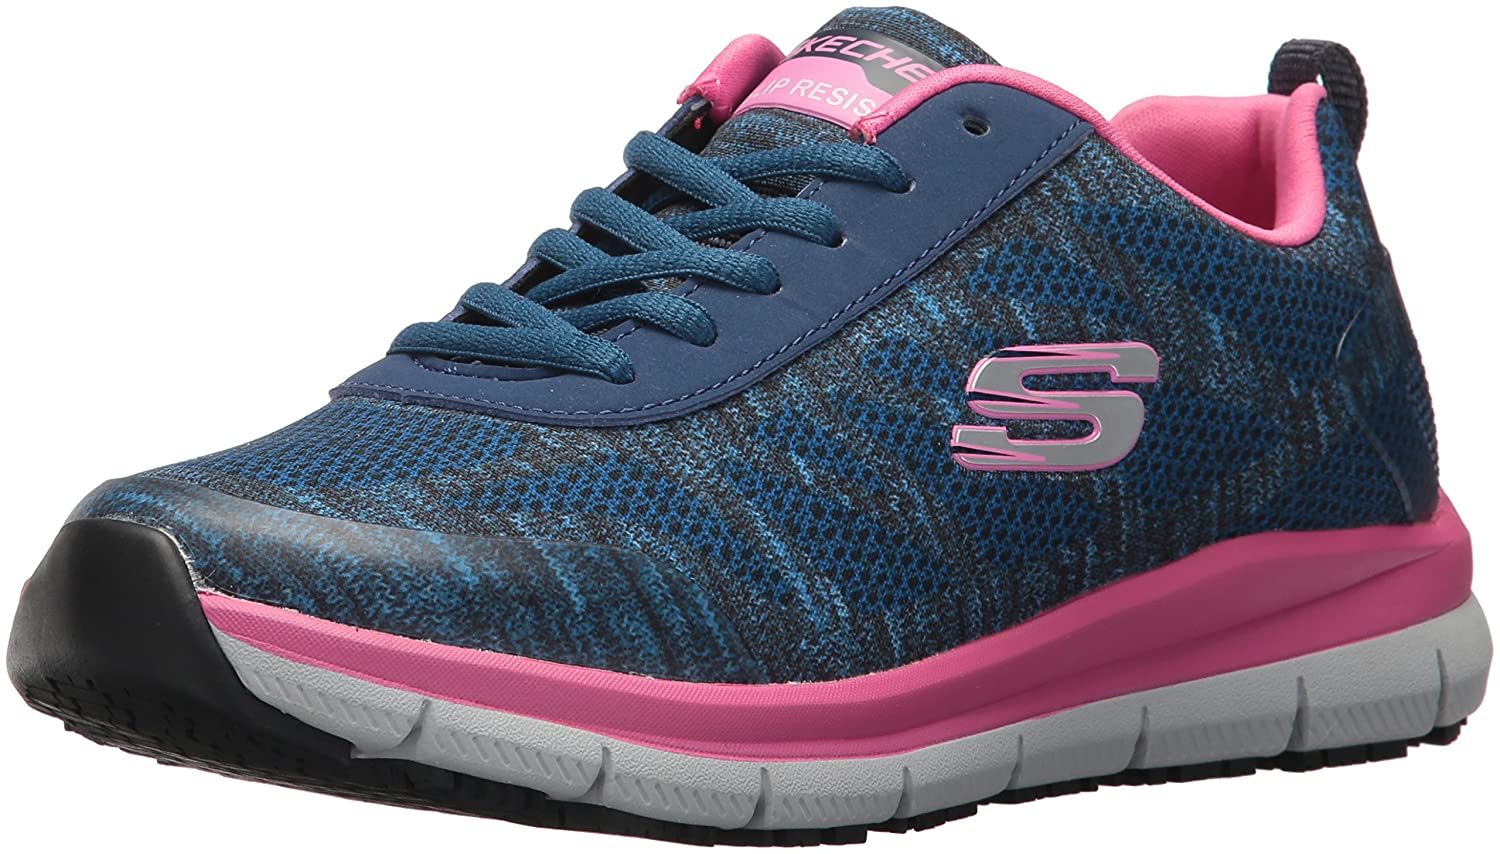 Navy Pink Skechers for Work Women's Comfort Flex HC Pro SR Health Care and Food Service shoes